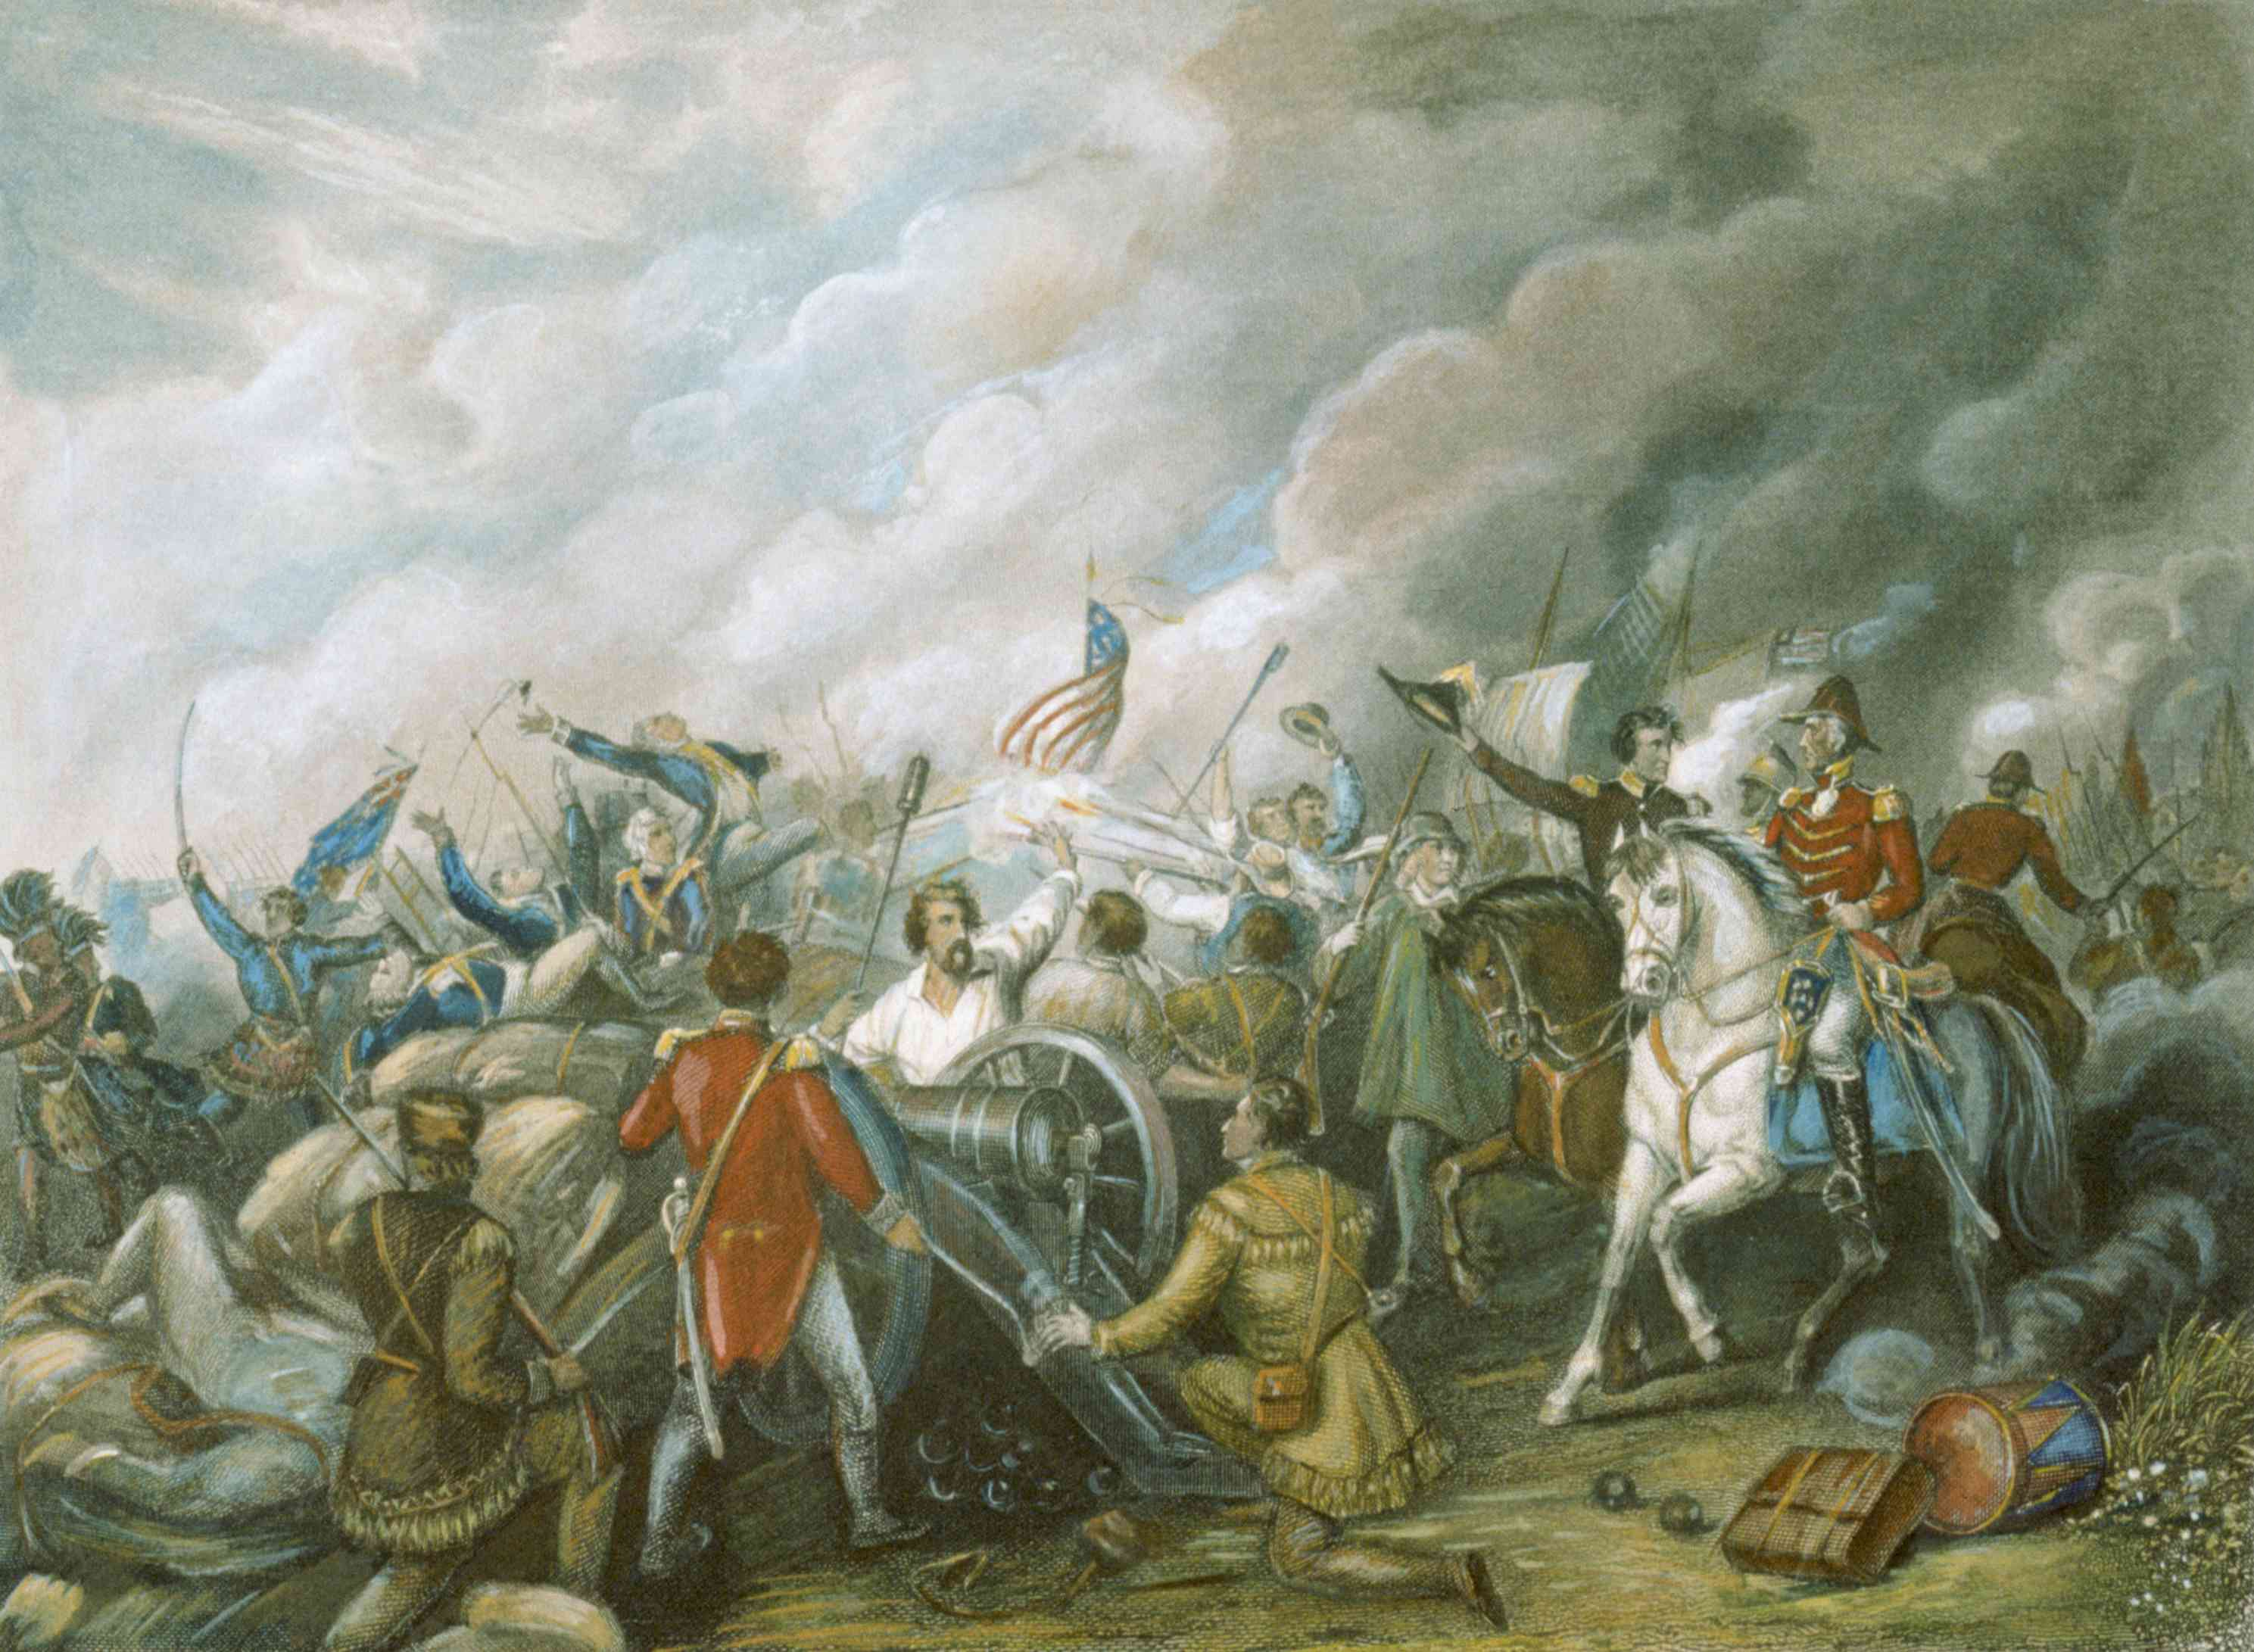 Illustration of the Battle of New Orleans